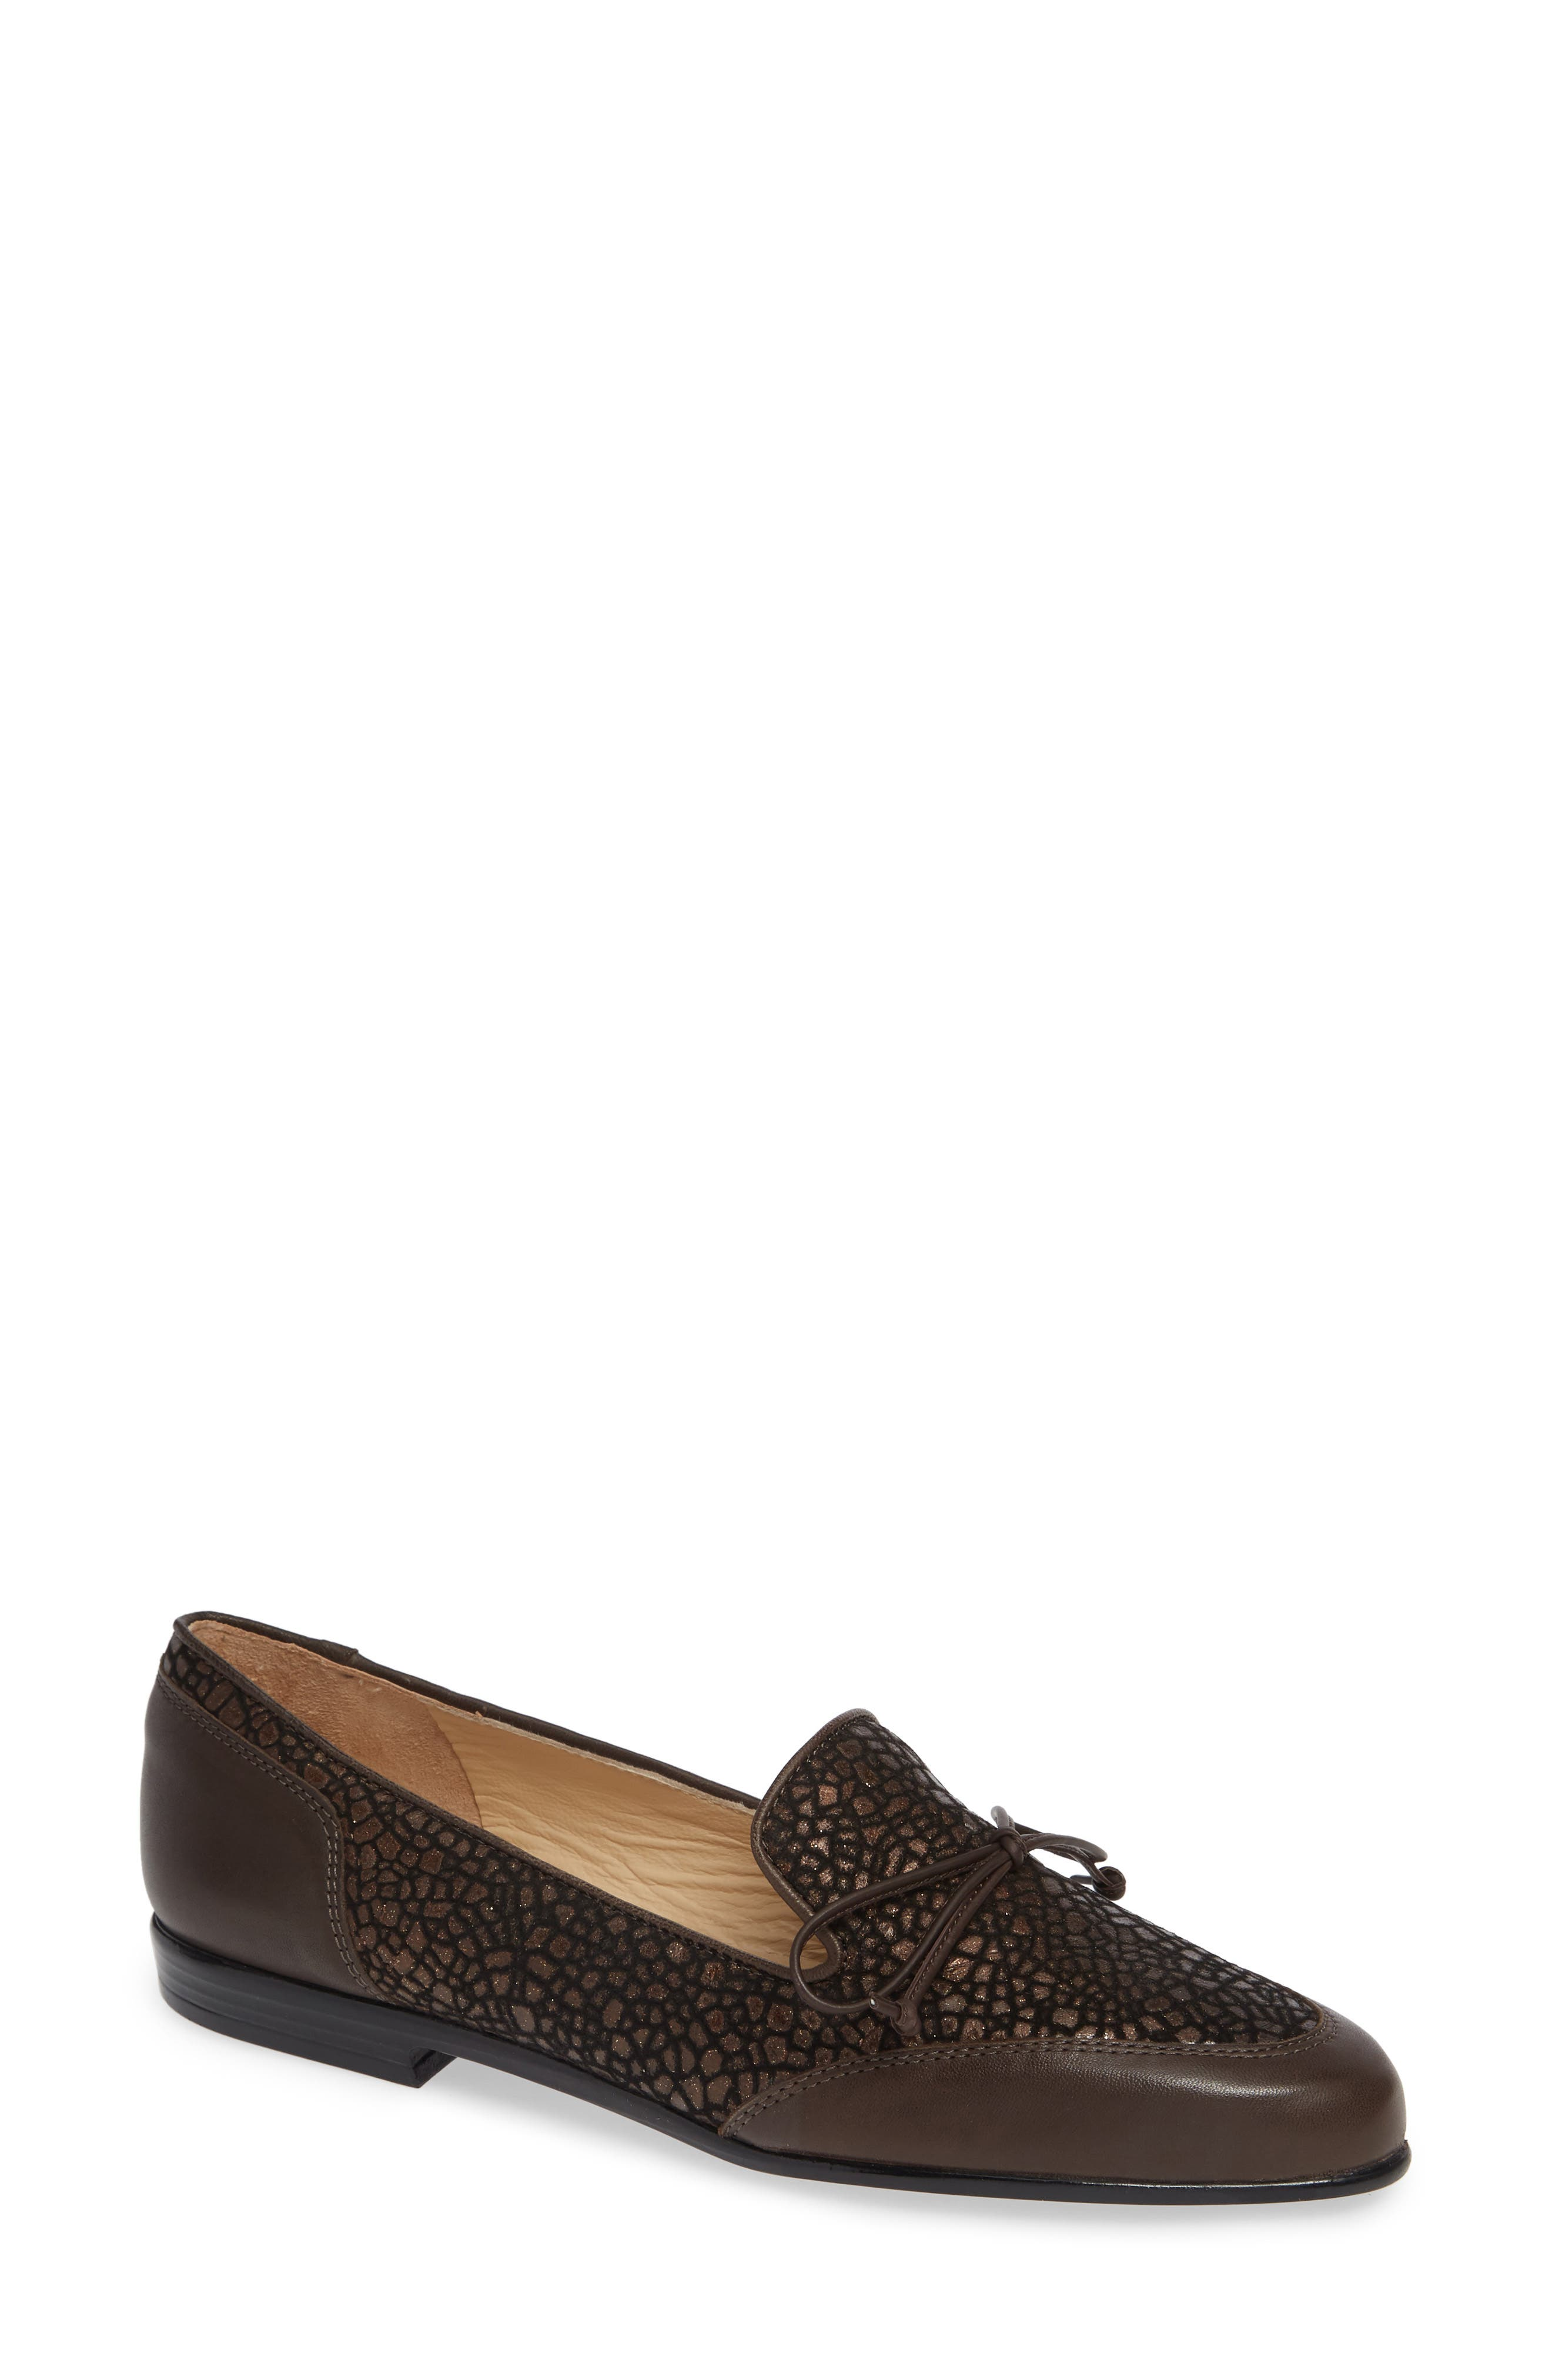 Ombretto Embossed Loafer in Moro Leather